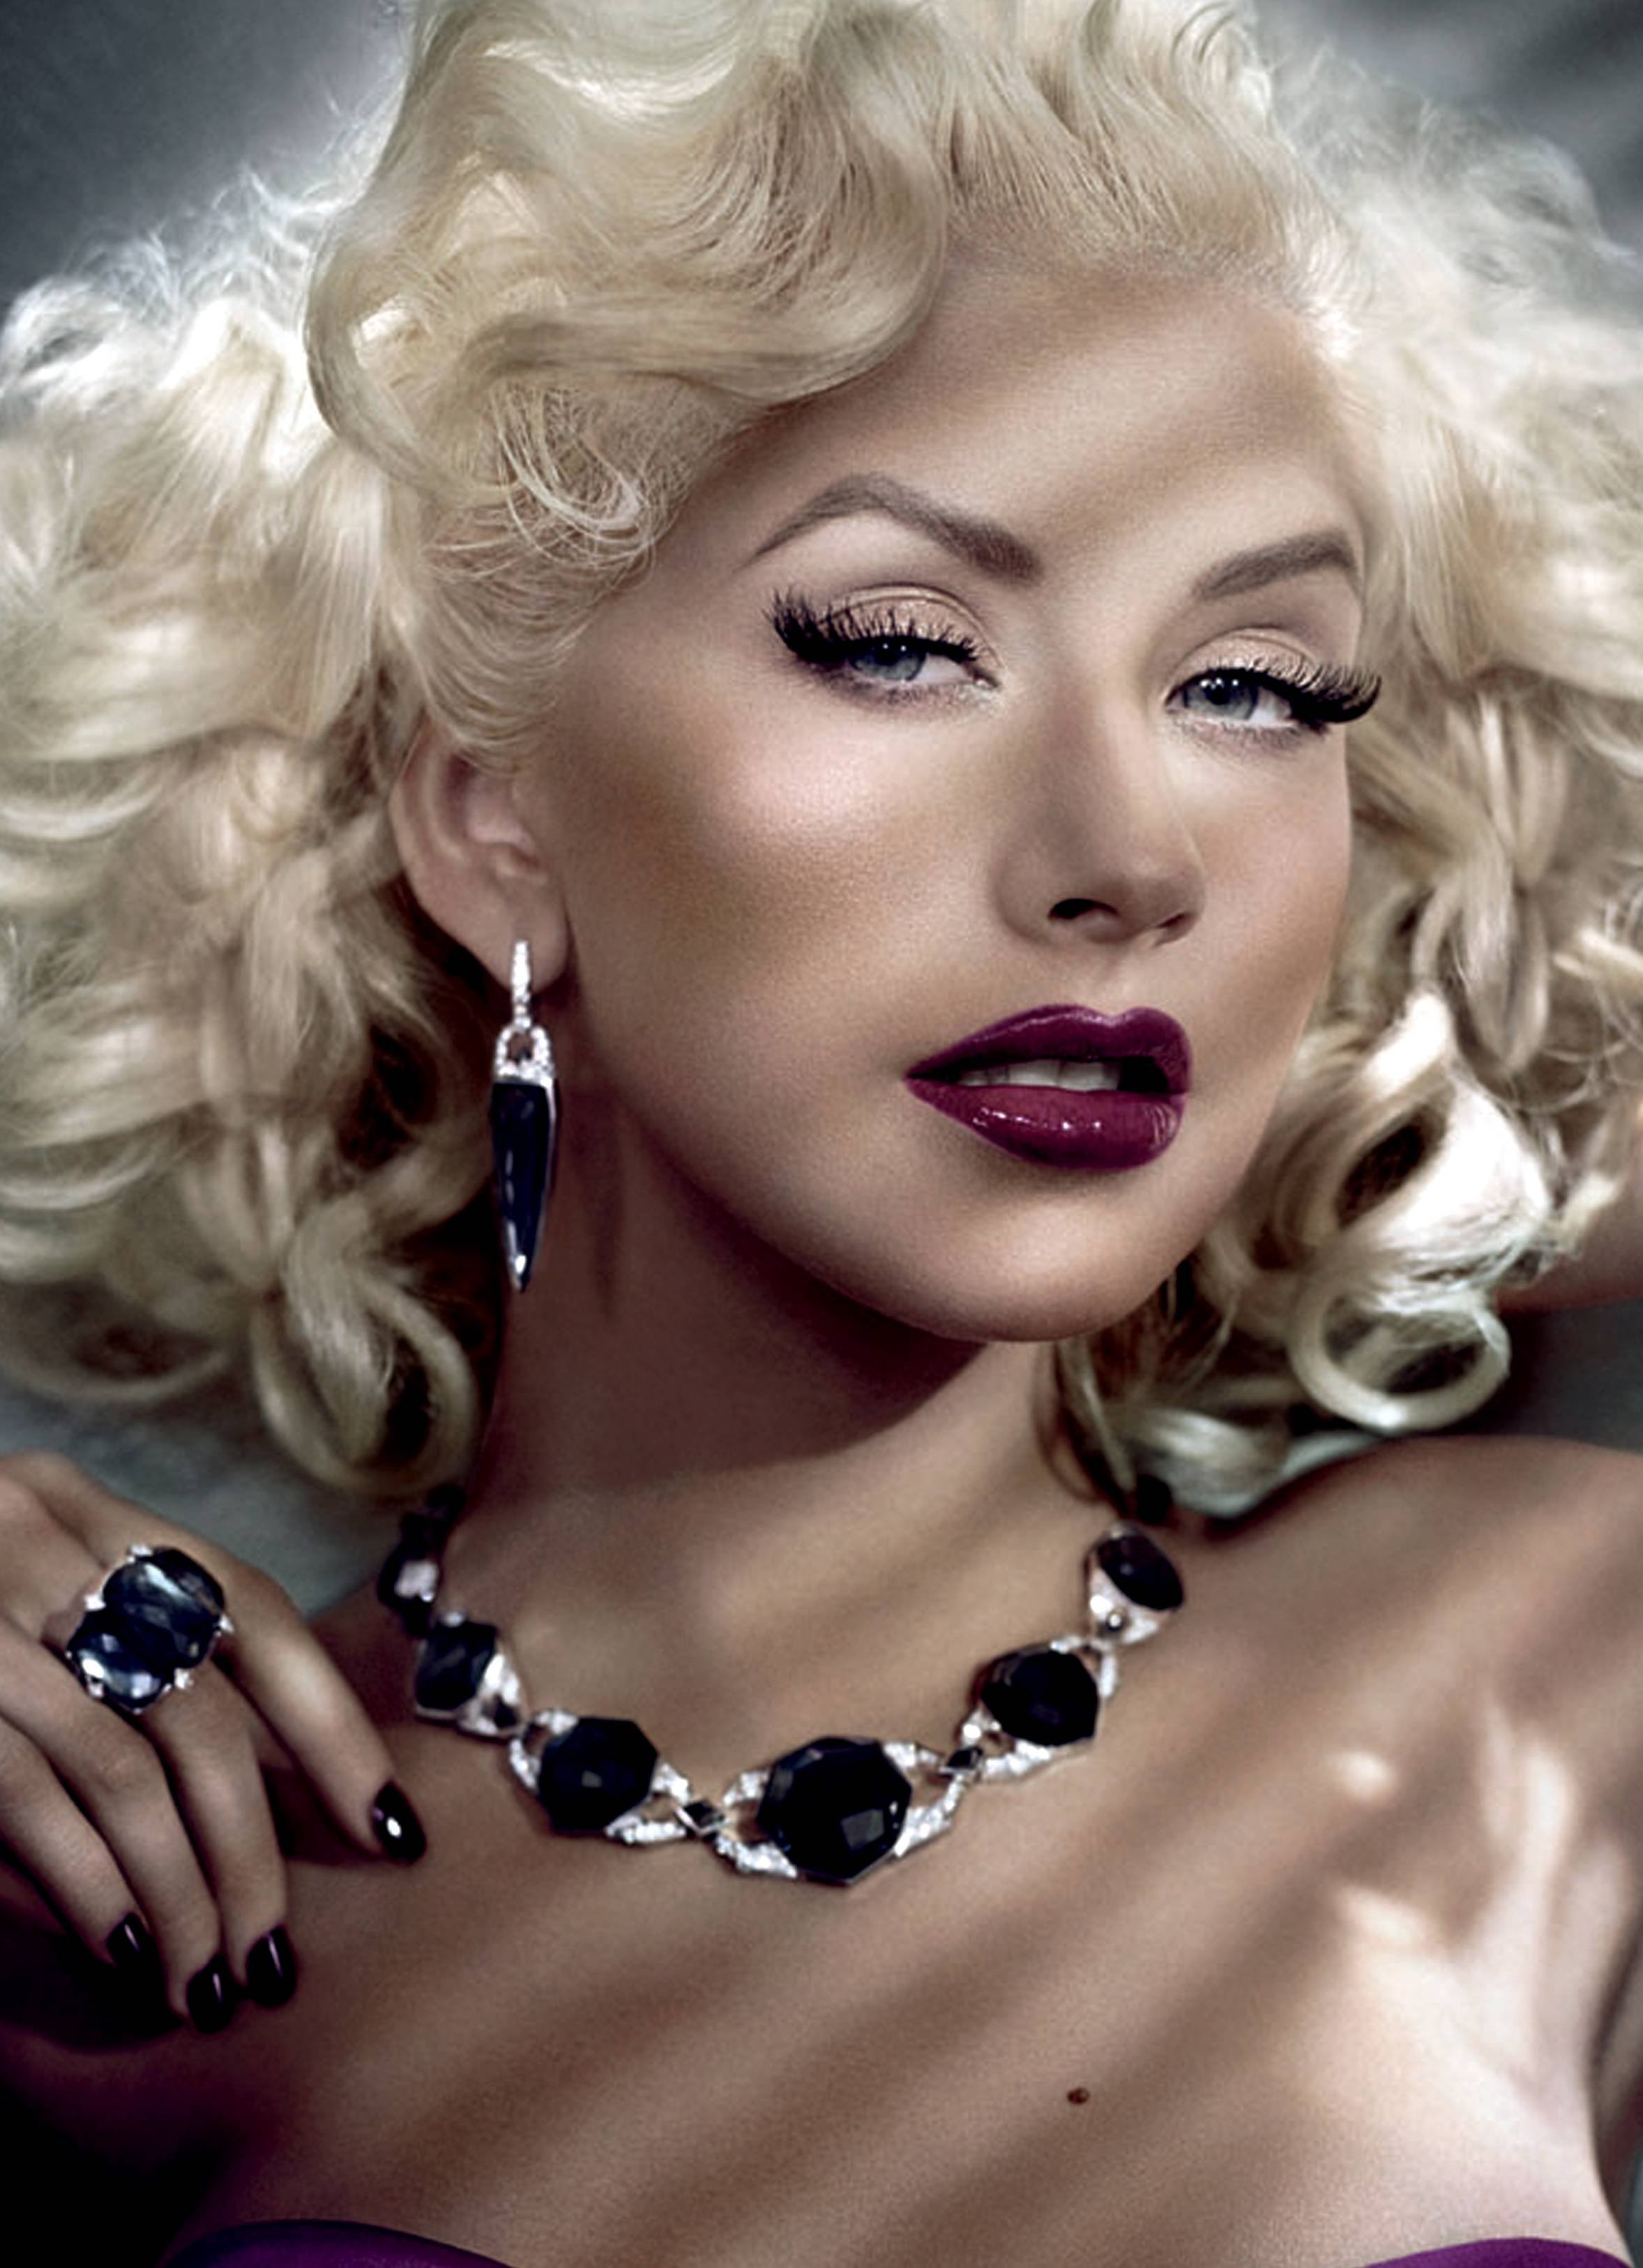 95178_Christina_Aguilera-009723_Stephen_Websters_Jewelry_Ad_Campaign_in_London_4Mar_28120081_122_982lo.jpg